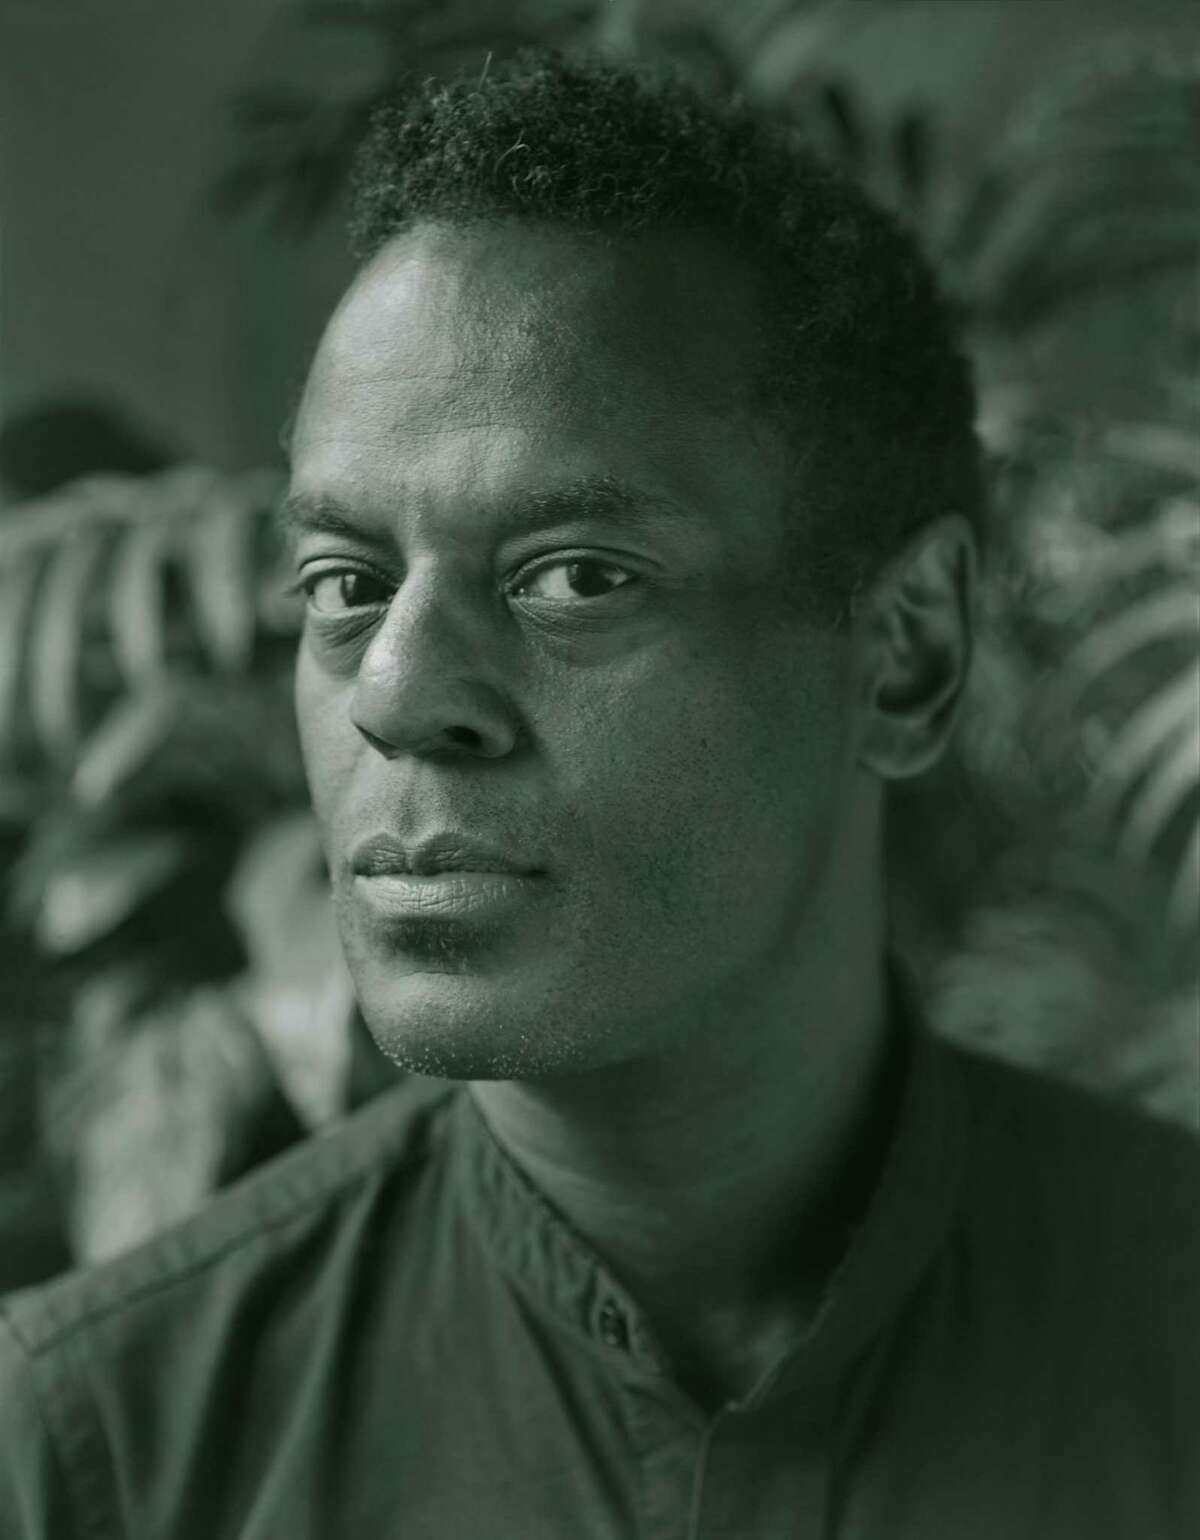 New York-based artist Clifford Owens just completed a two-month residency at Artpace.